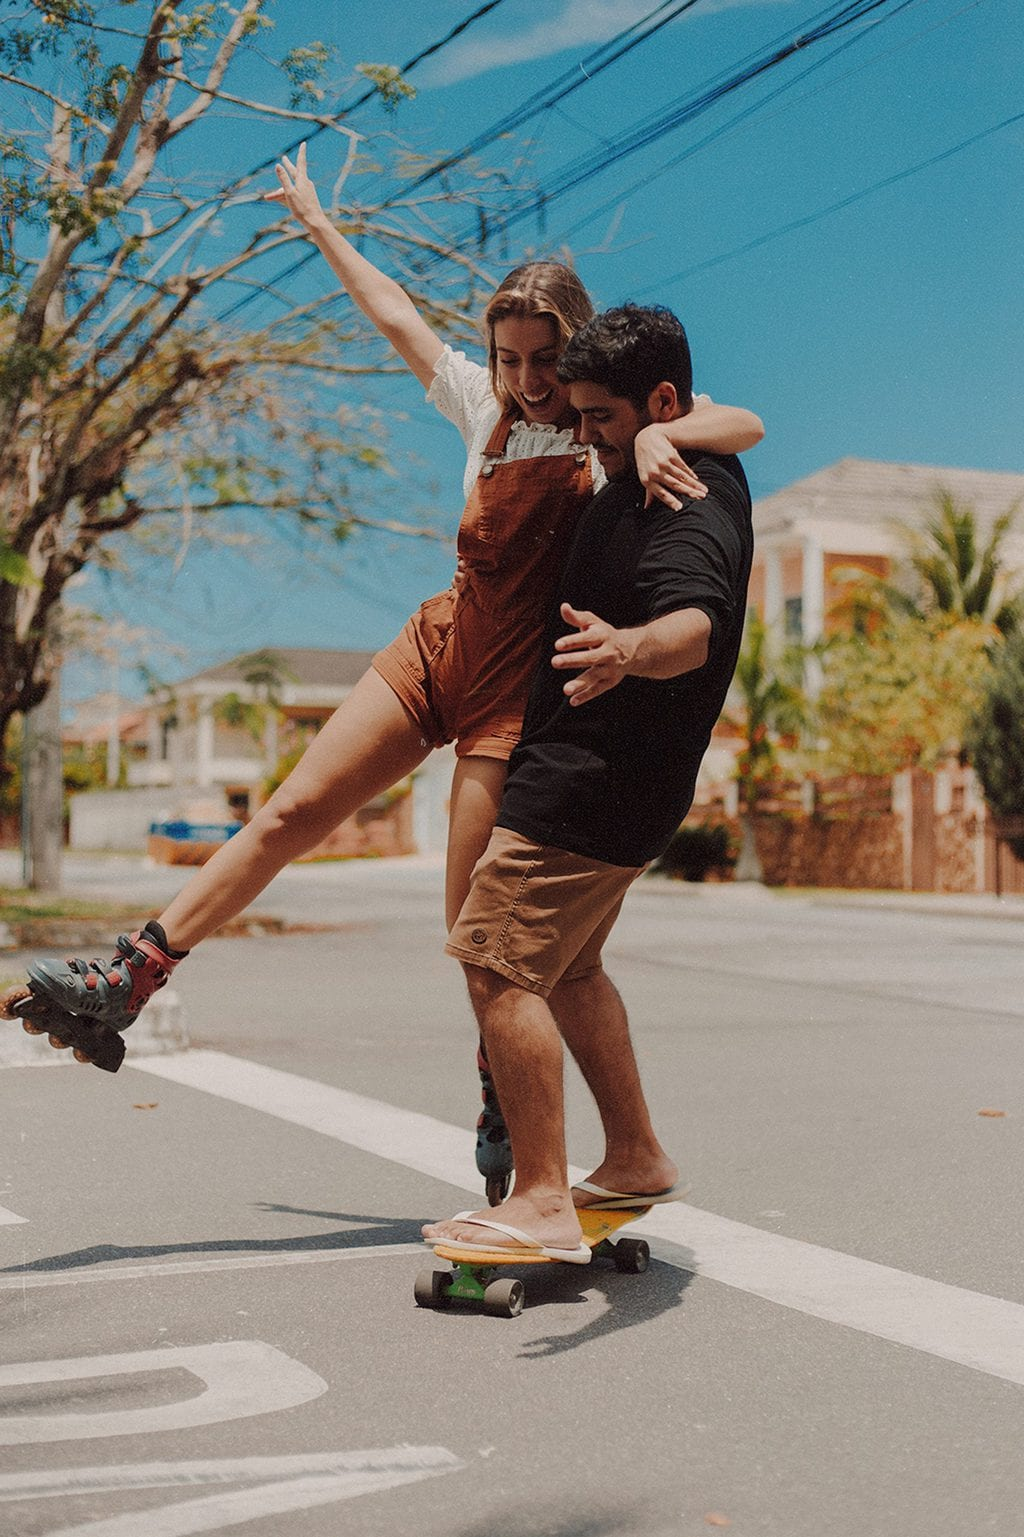 at home date ideas man and woman riding roller skates and on skateboard source: Pexels